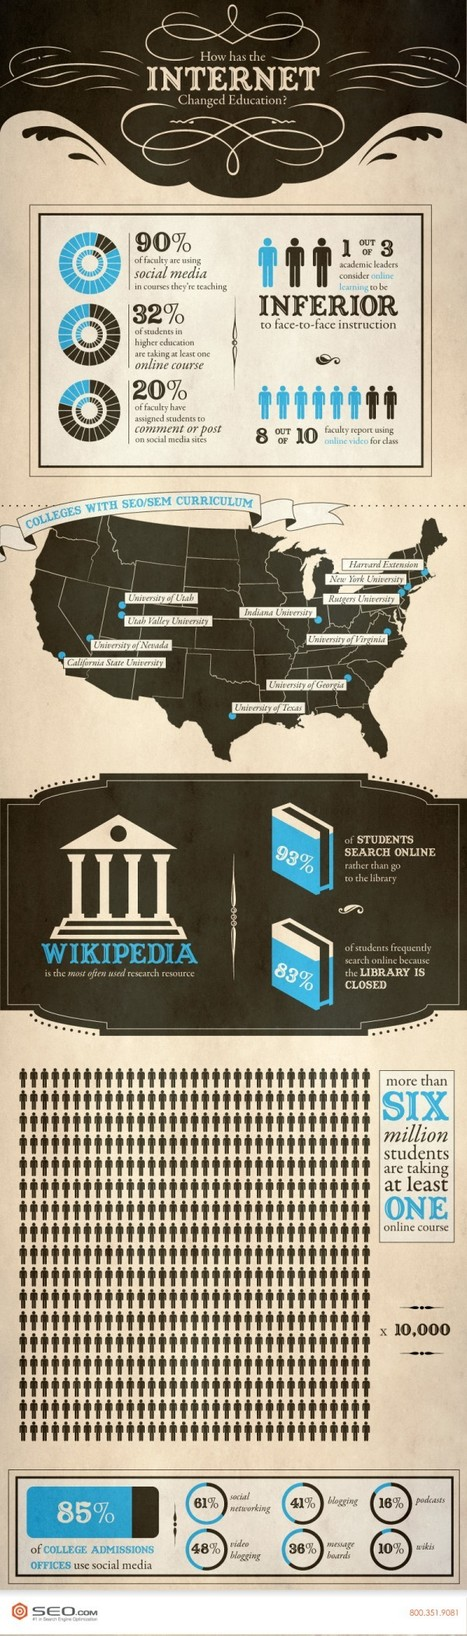 Case Study: How Wikipedia has changed Education from Internet [Infographic] | social media and digital marketing | Scoop.it